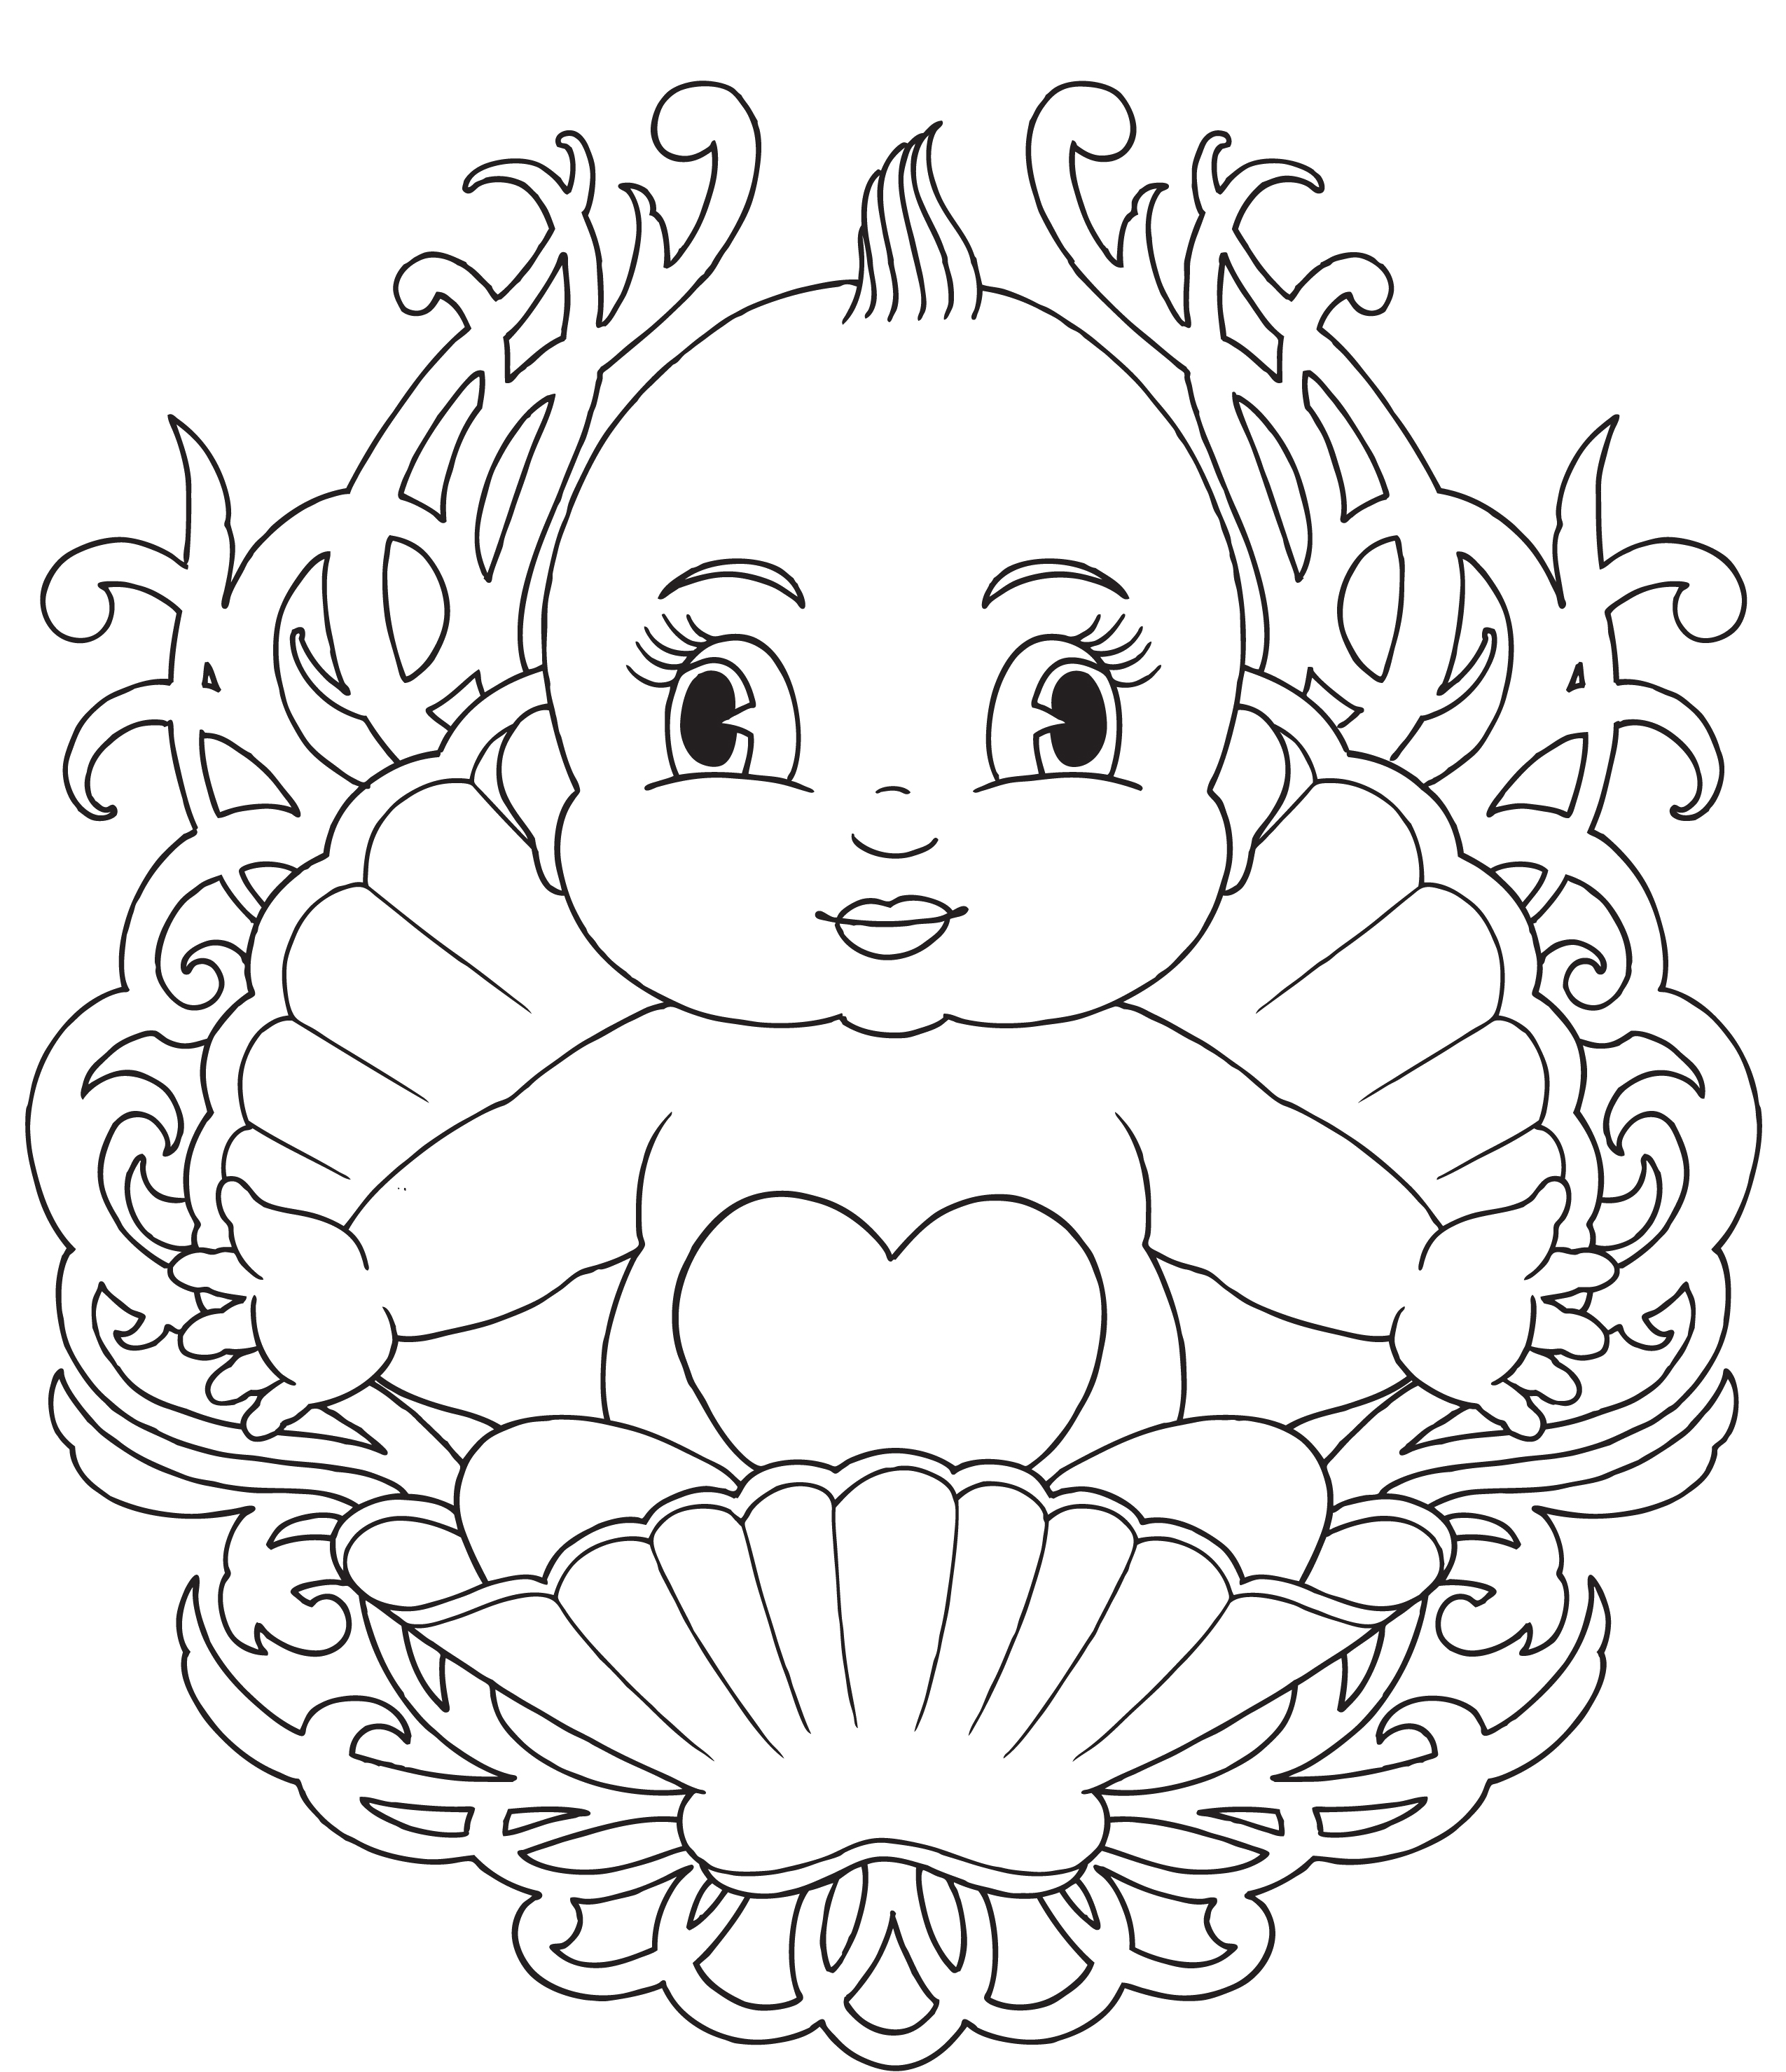 cloudbabies coloring pages for kids - photo#33